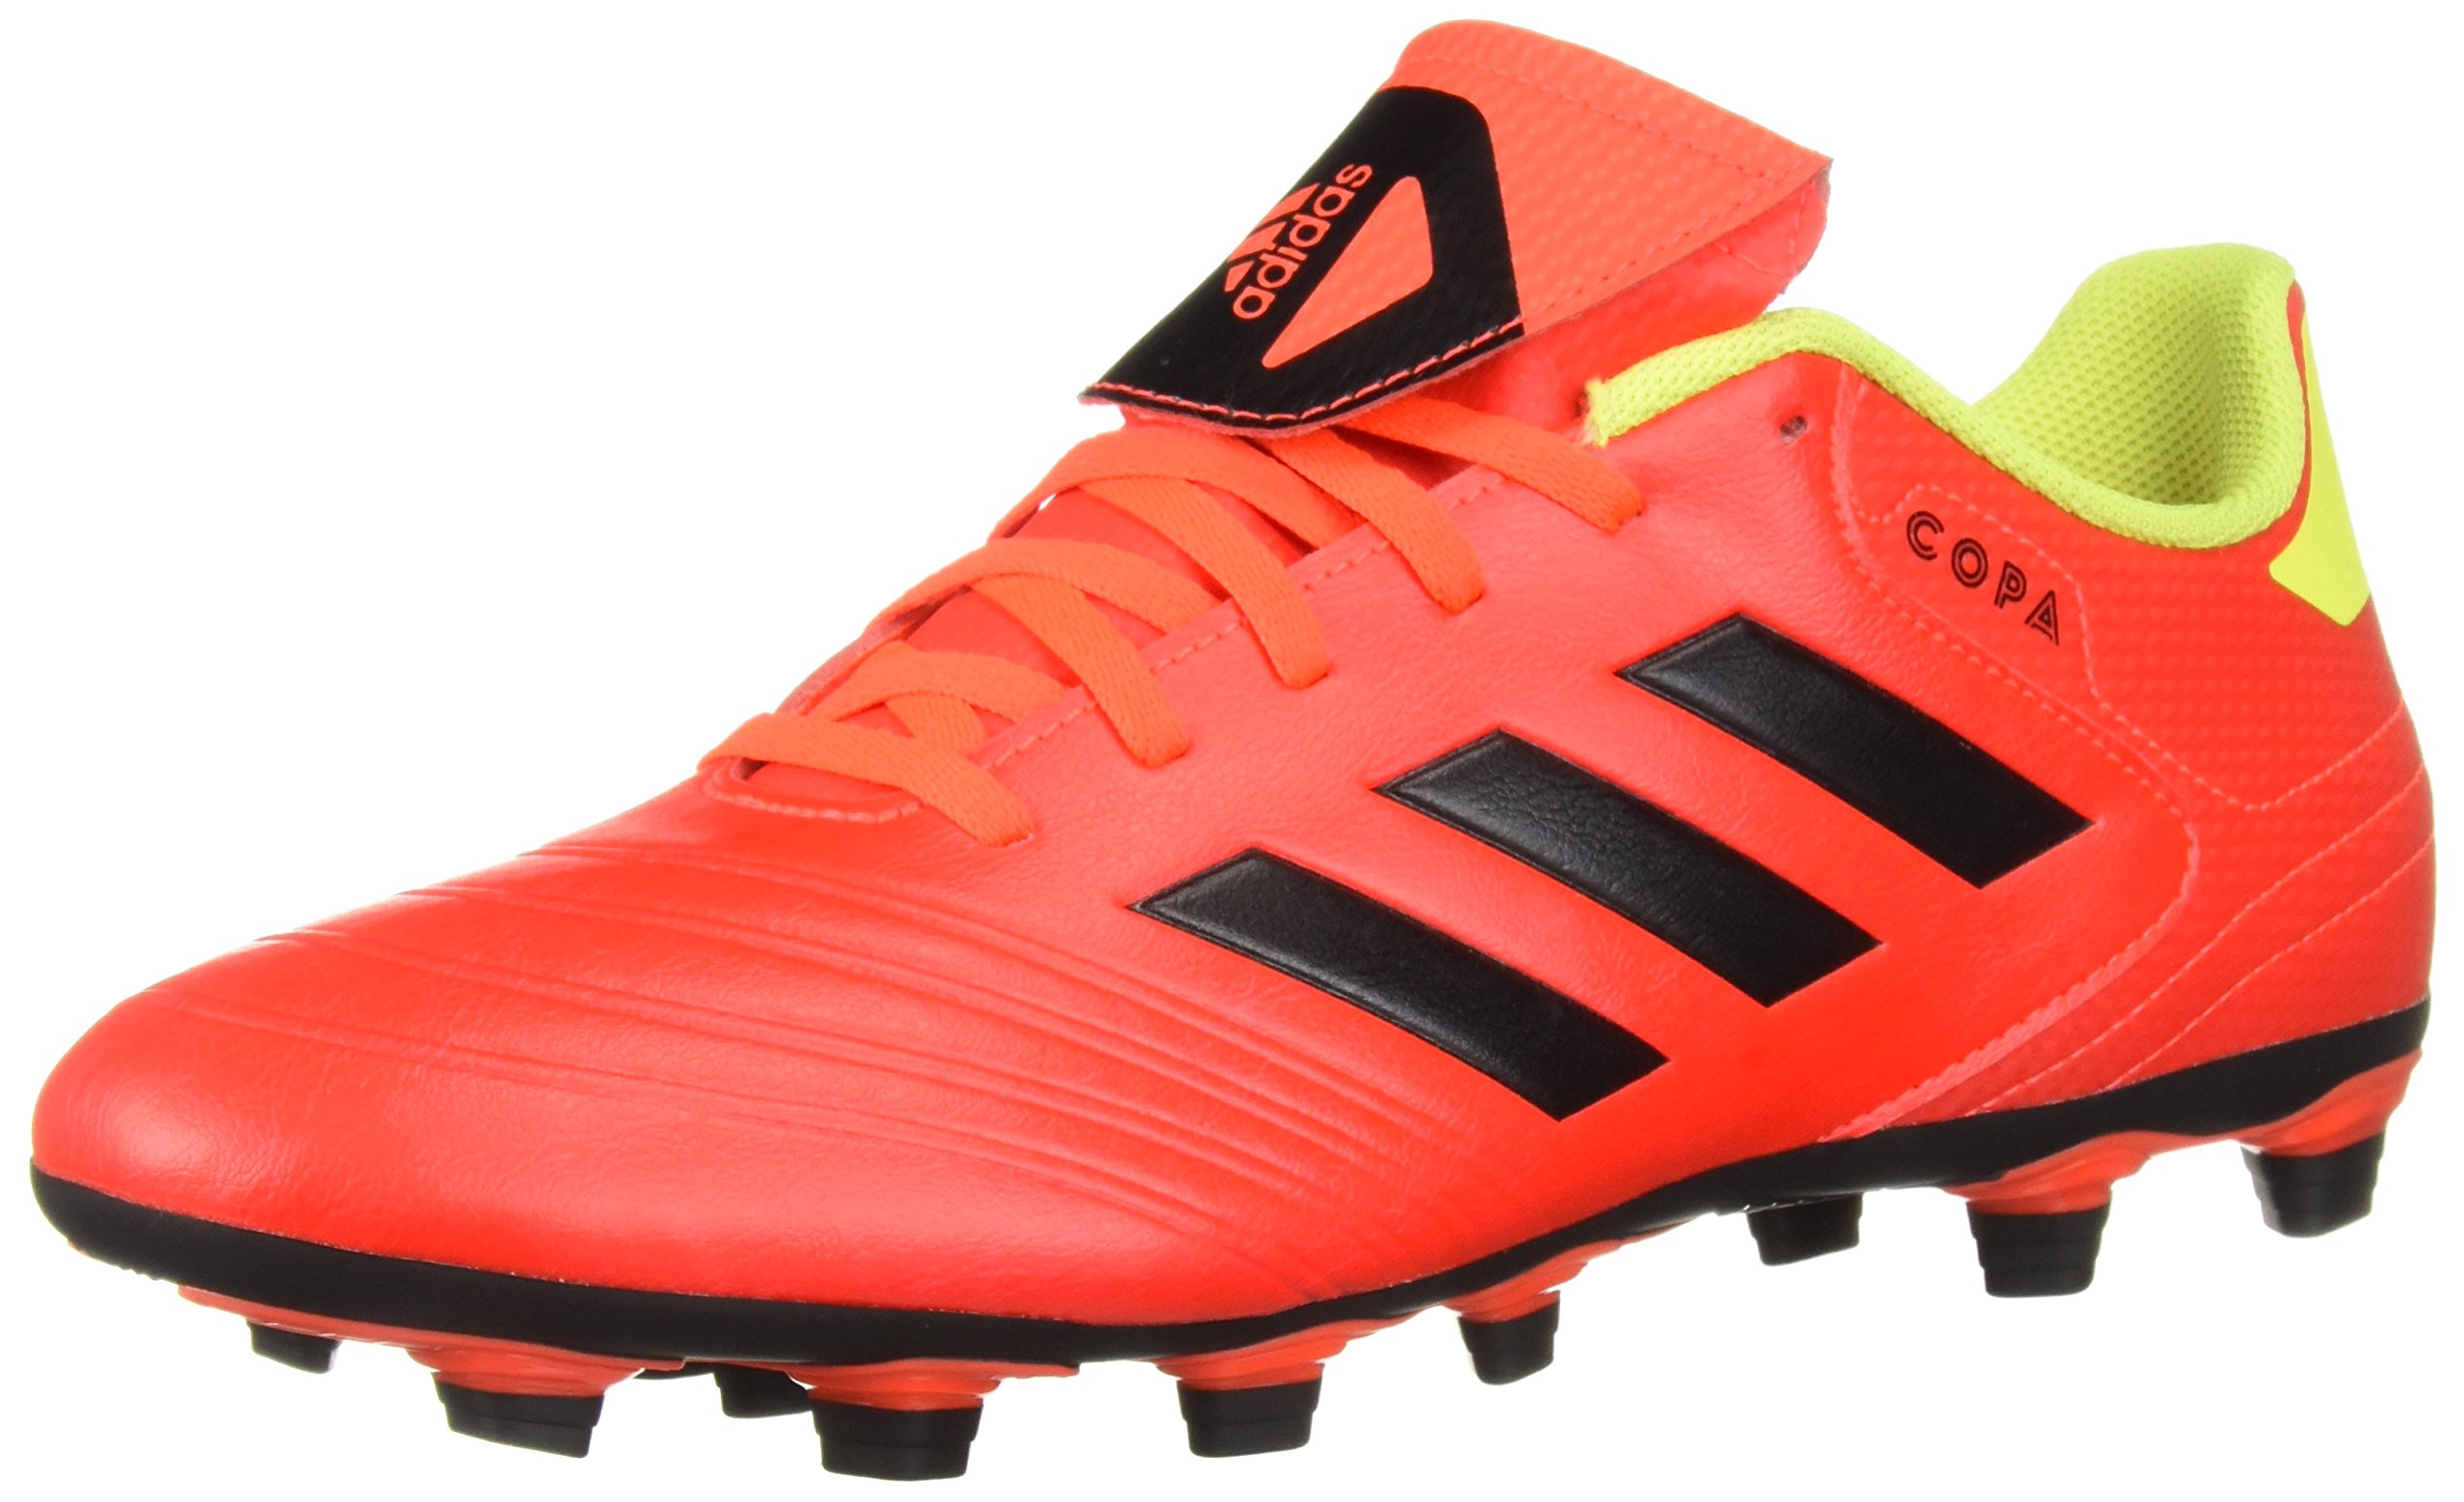 adidas Men's Copa 18.4 Firm Ground Soccer Shoe, Solar Red/Black/Solar Yellow, 12.5 M US